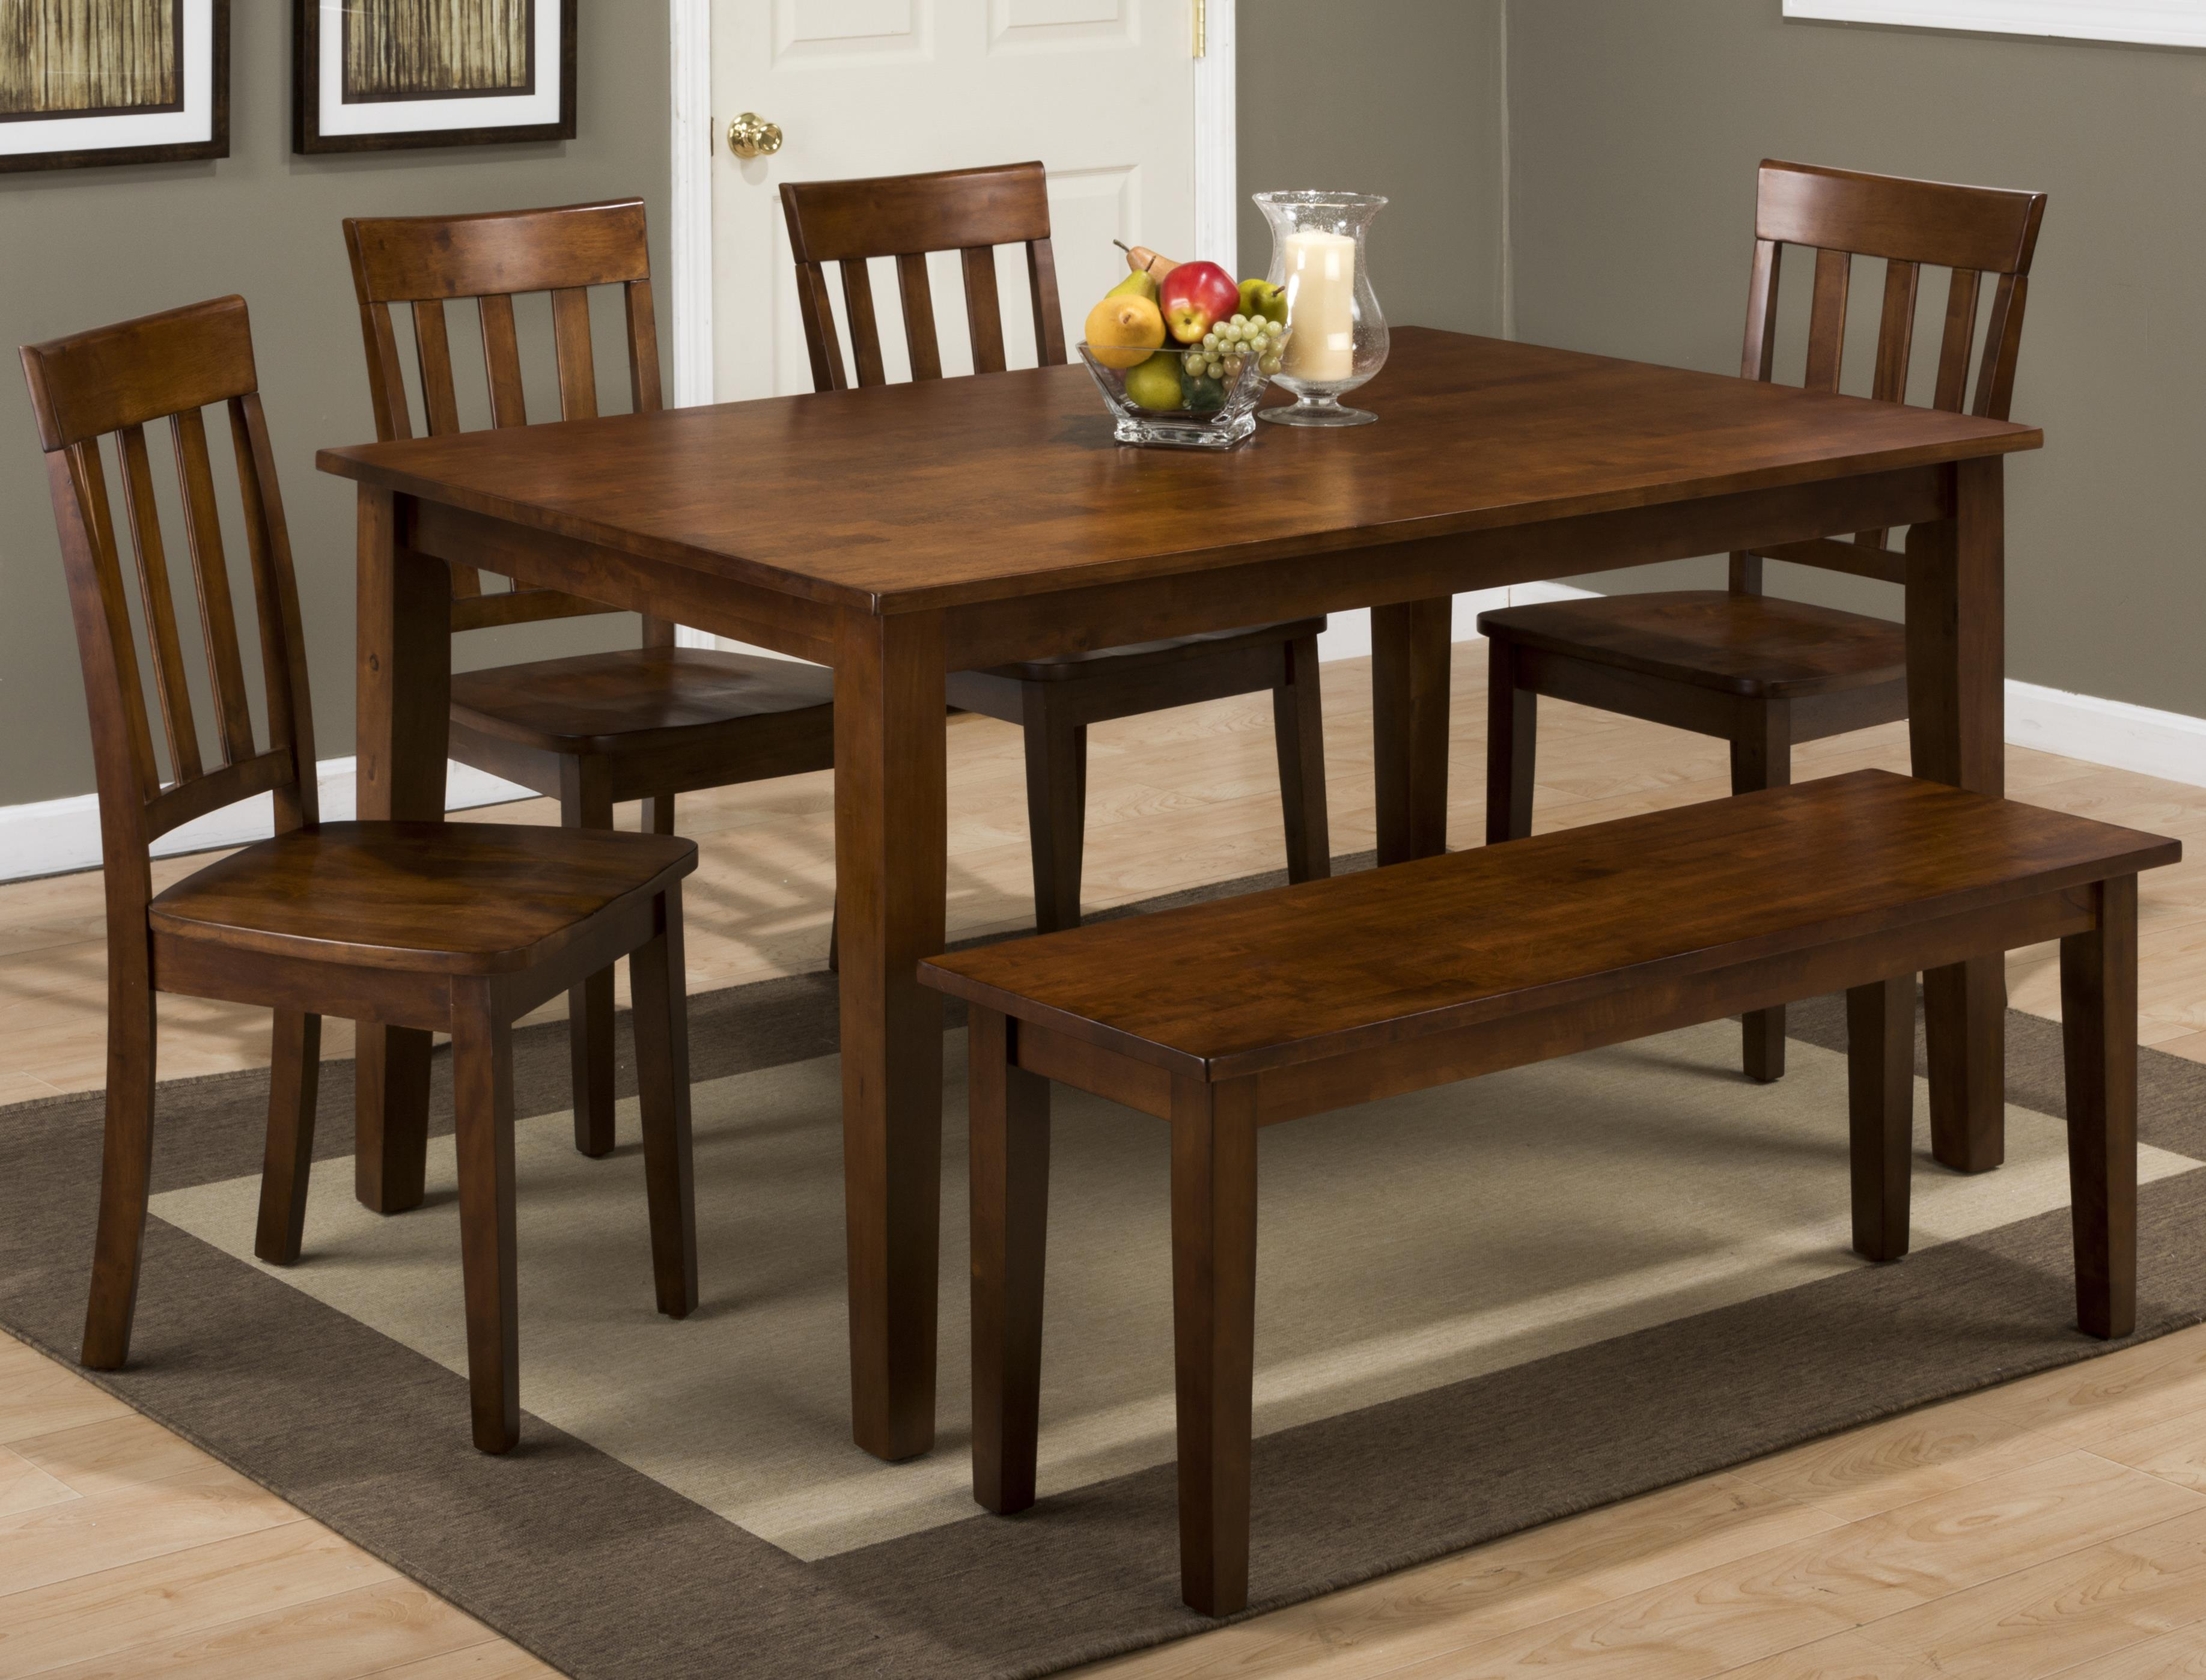 3x3x3 caramel rectangle dining table and x back chair set with bench rotmans table. Black Bedroom Furniture Sets. Home Design Ideas